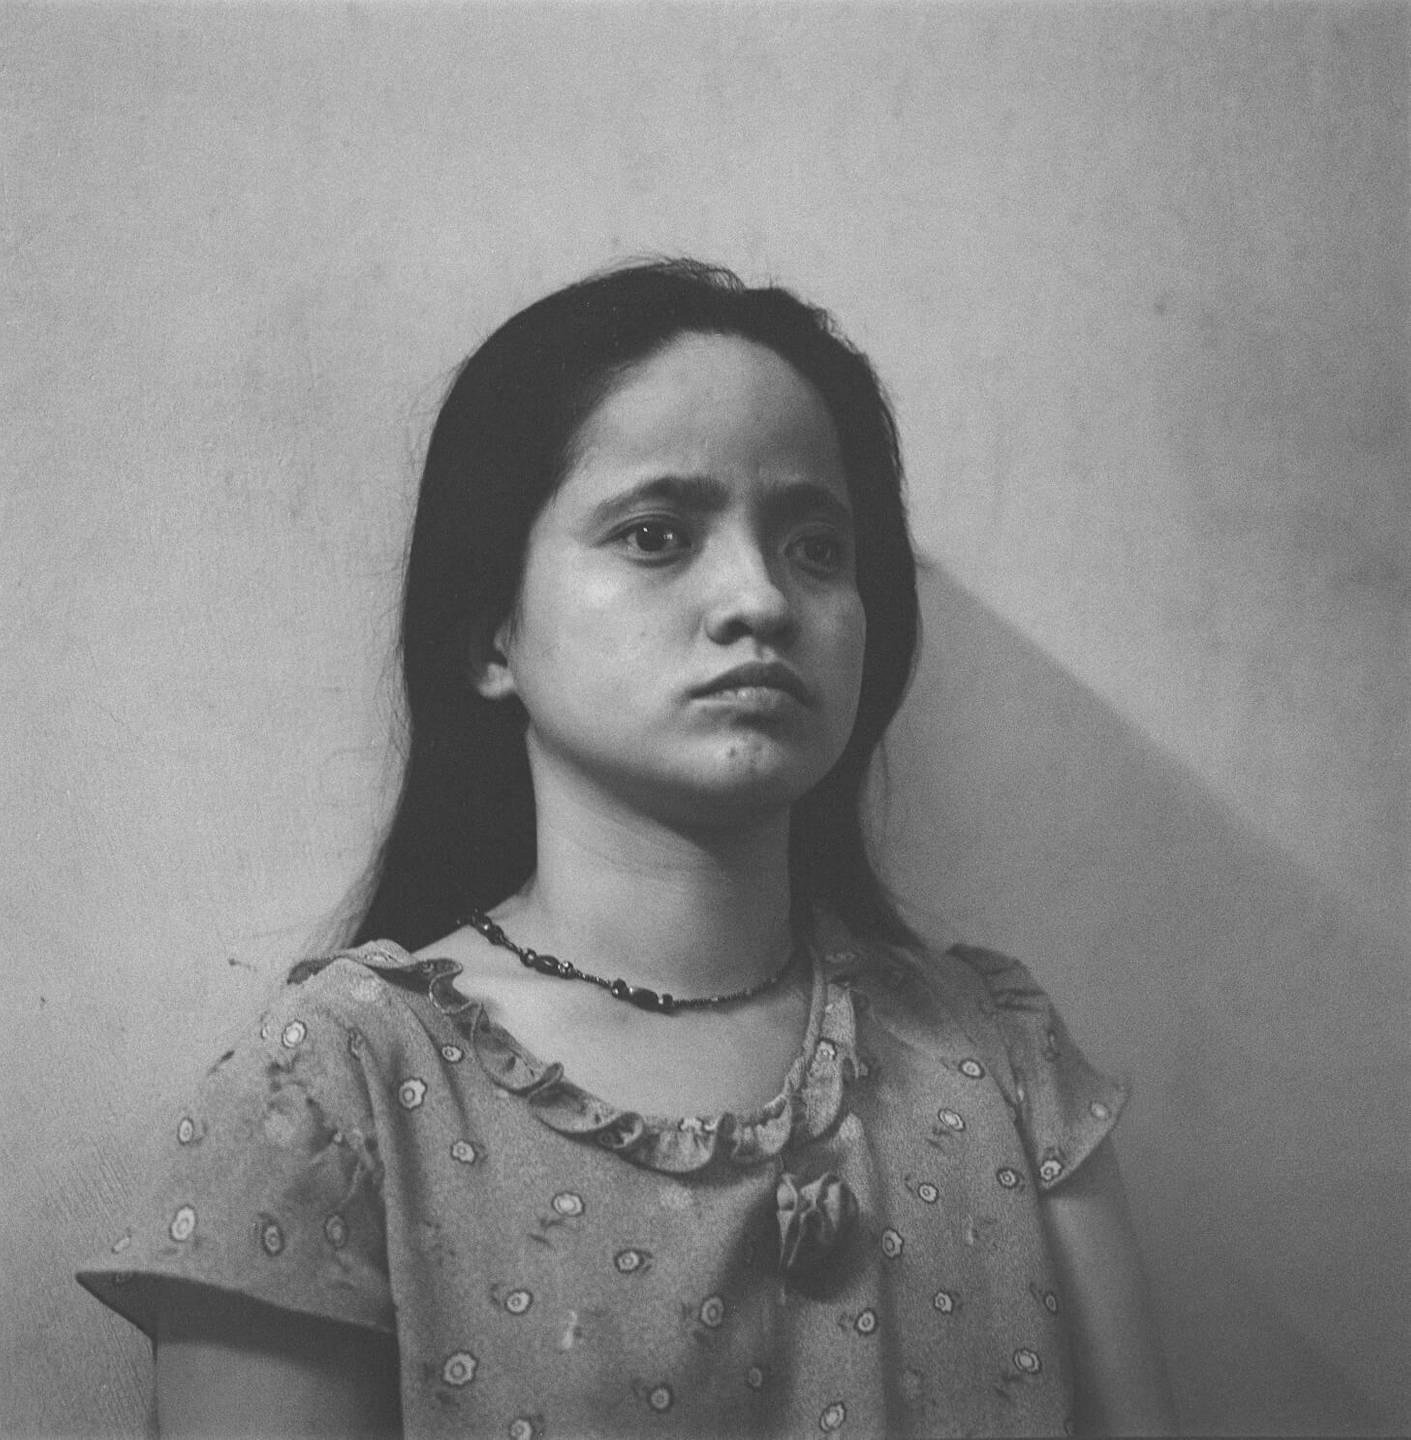 A young Asian girl looking dazed, against a wall.